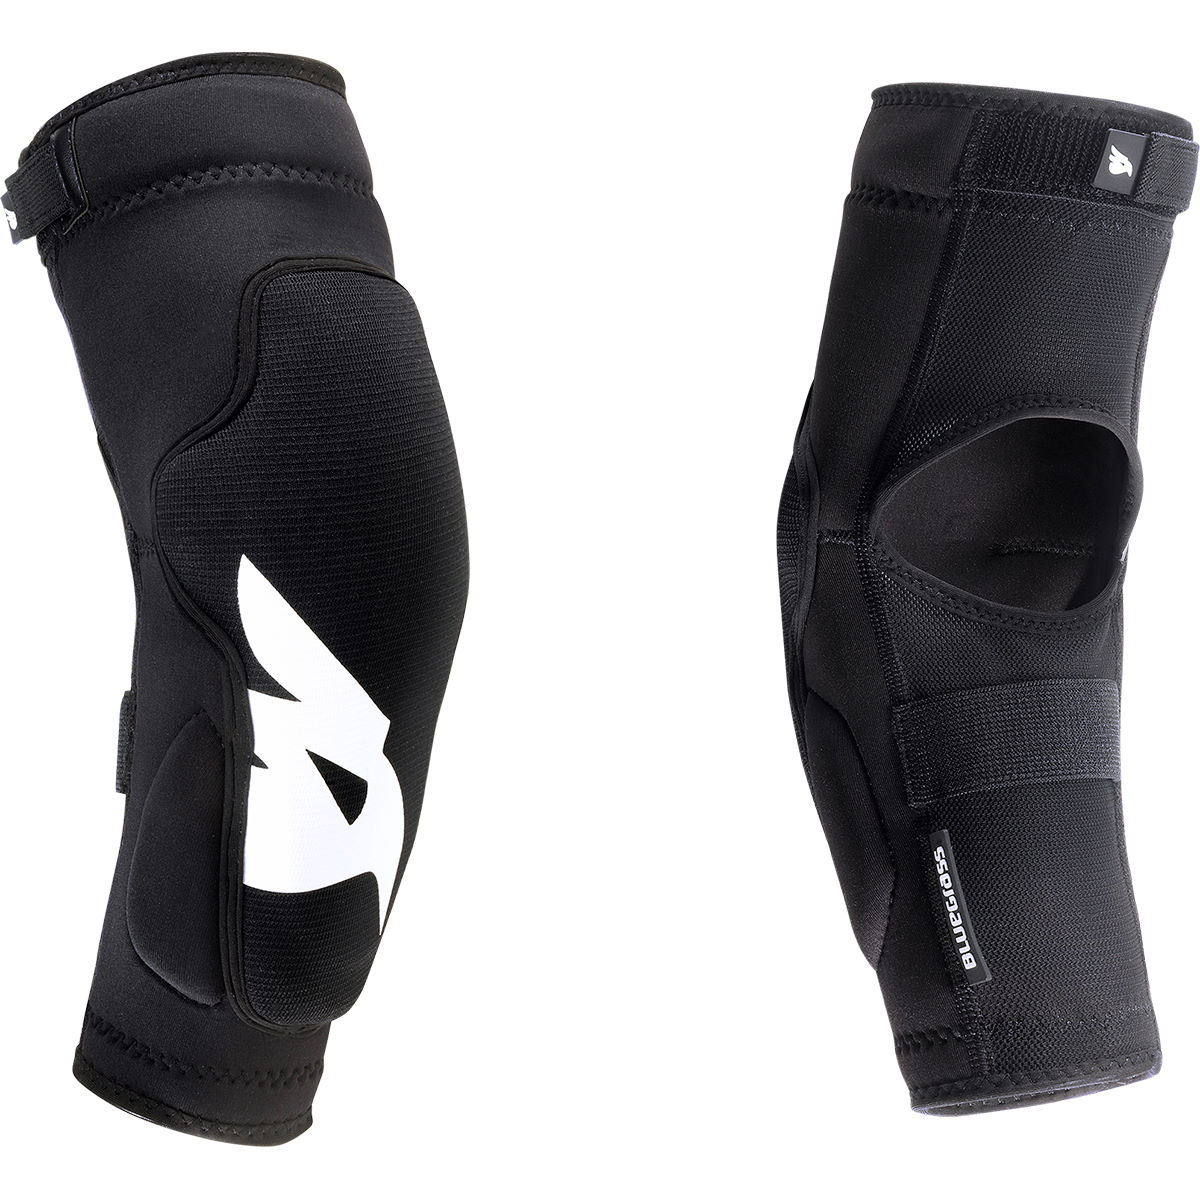 Bluegrass Bluegrass Solid Elbow Guards   Elbow Pads